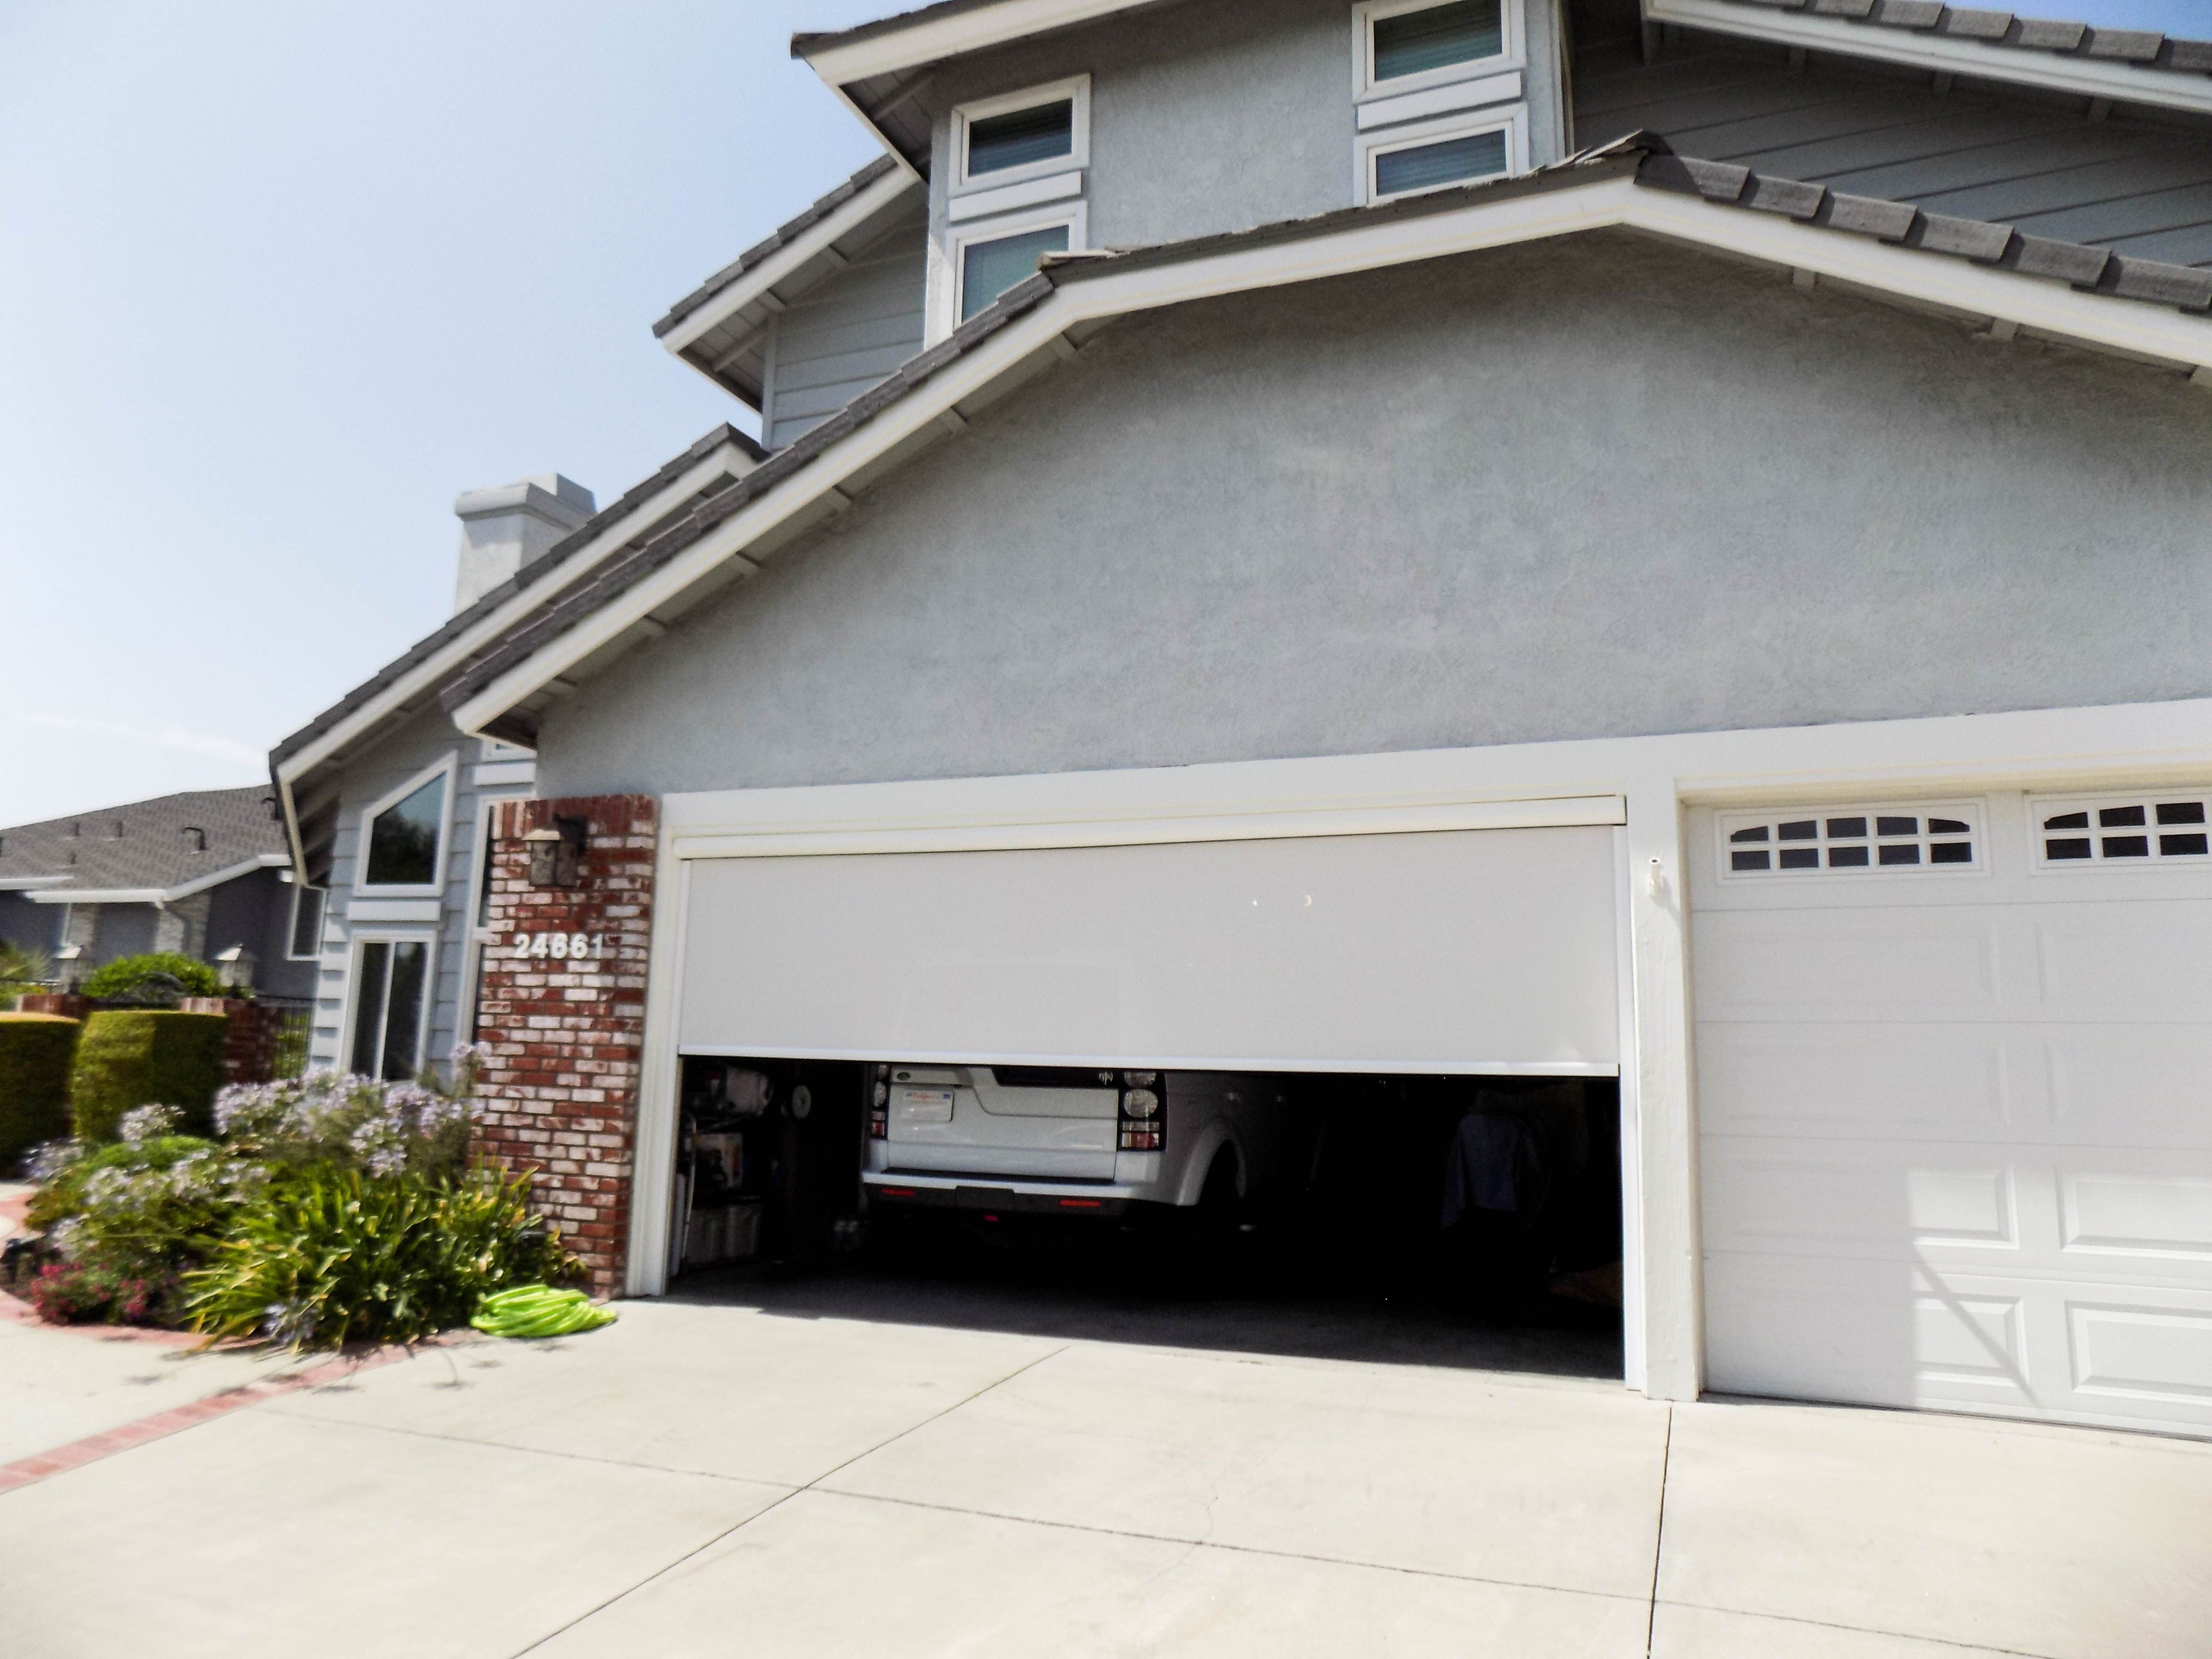 We Installed A Motorized Power Screen On A Garage Door In Laguna Hills California In Orange County For This Traditional Style Homes Garage Doors Garage House